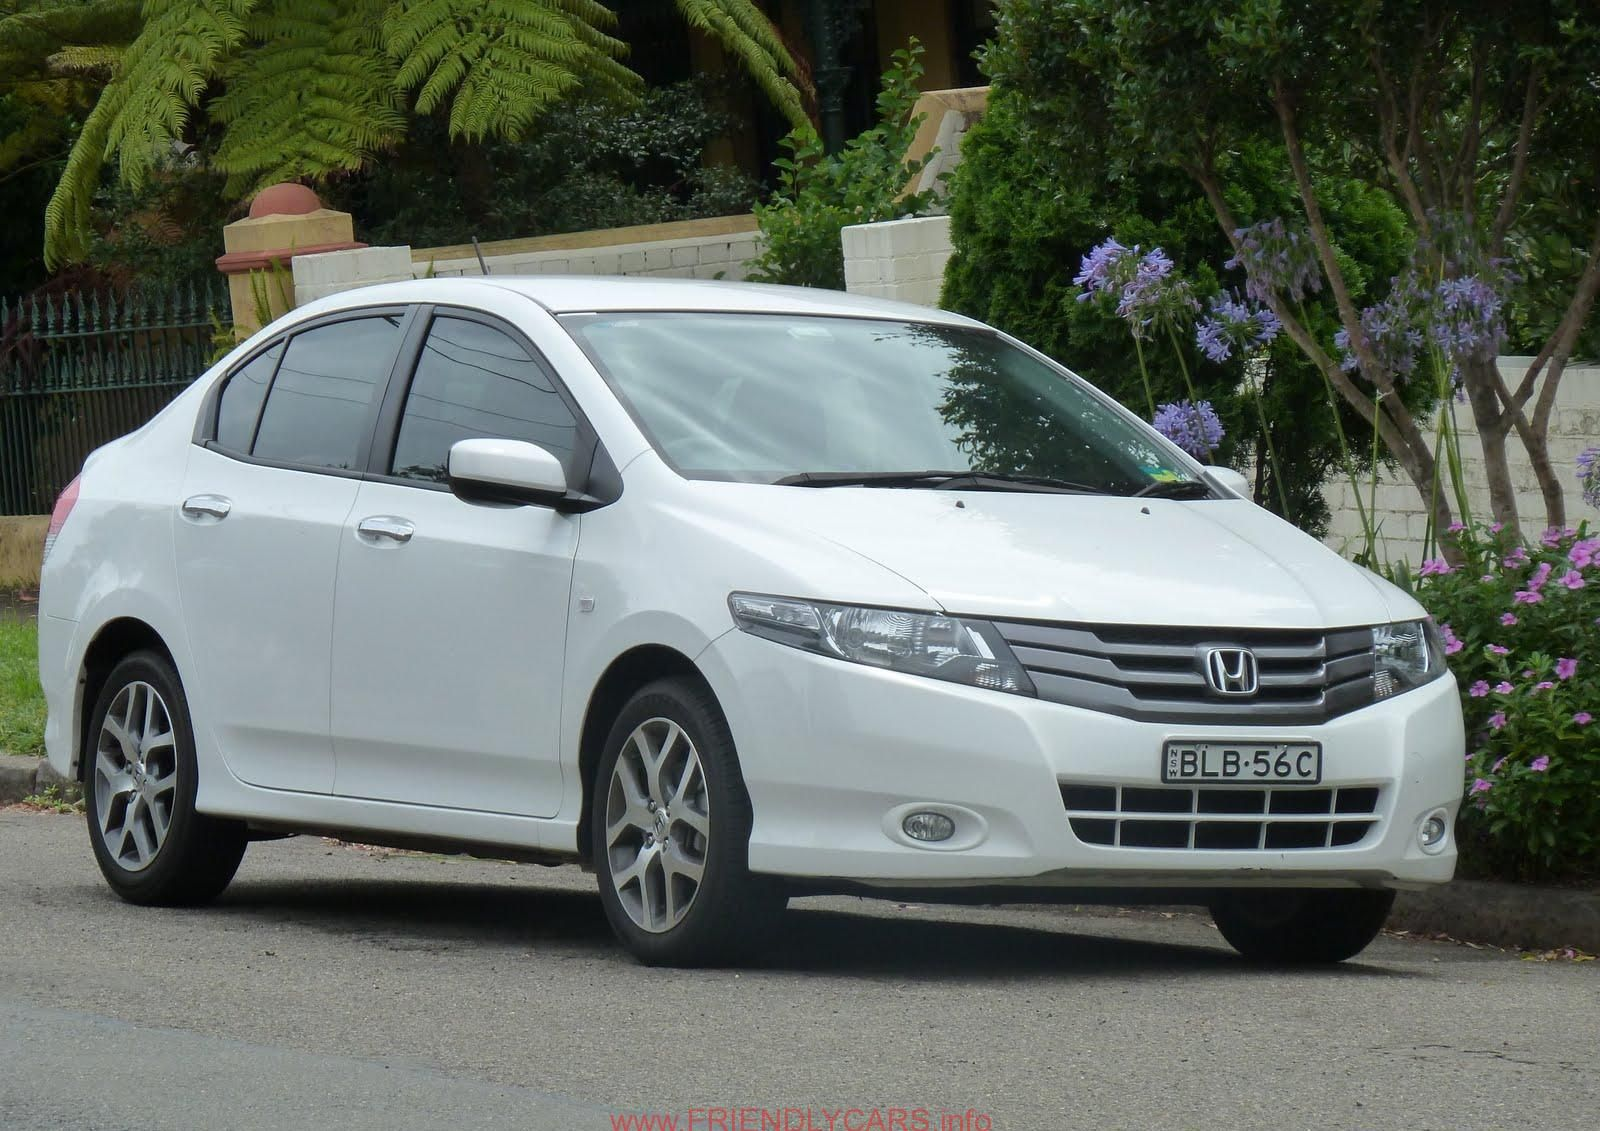 Awesome Honda City White Interior Car Images Hd June 2011